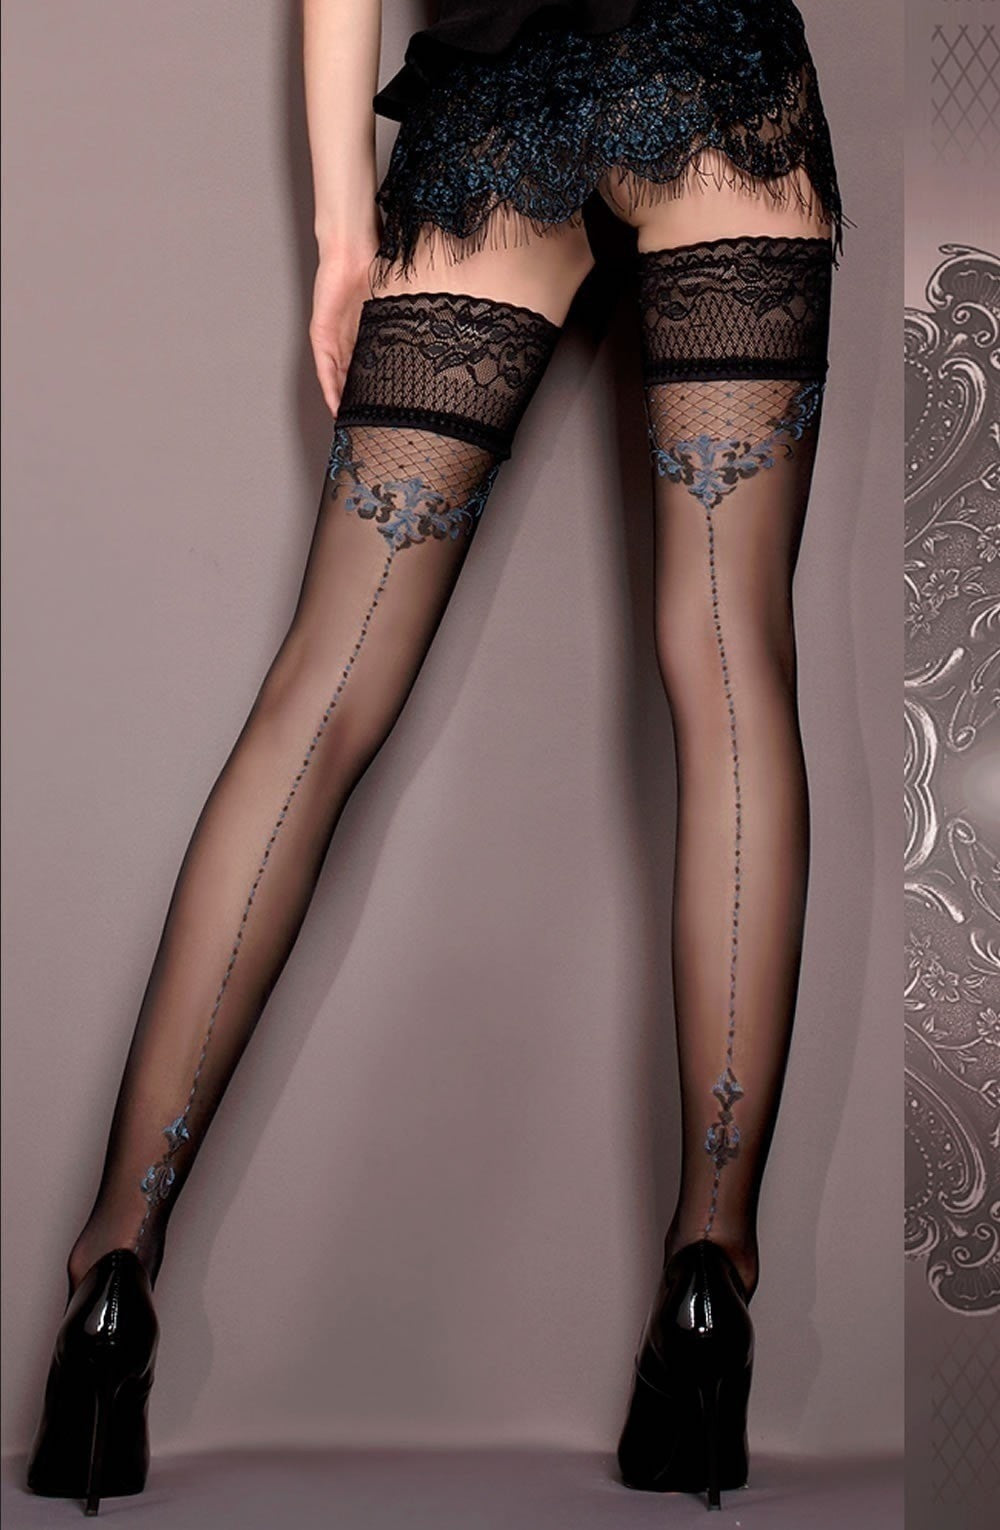 Ballerina Hold Ups 415 (Black/Blue) - Hold Up Stockings - Ballerina - Charm and Lace Boutique